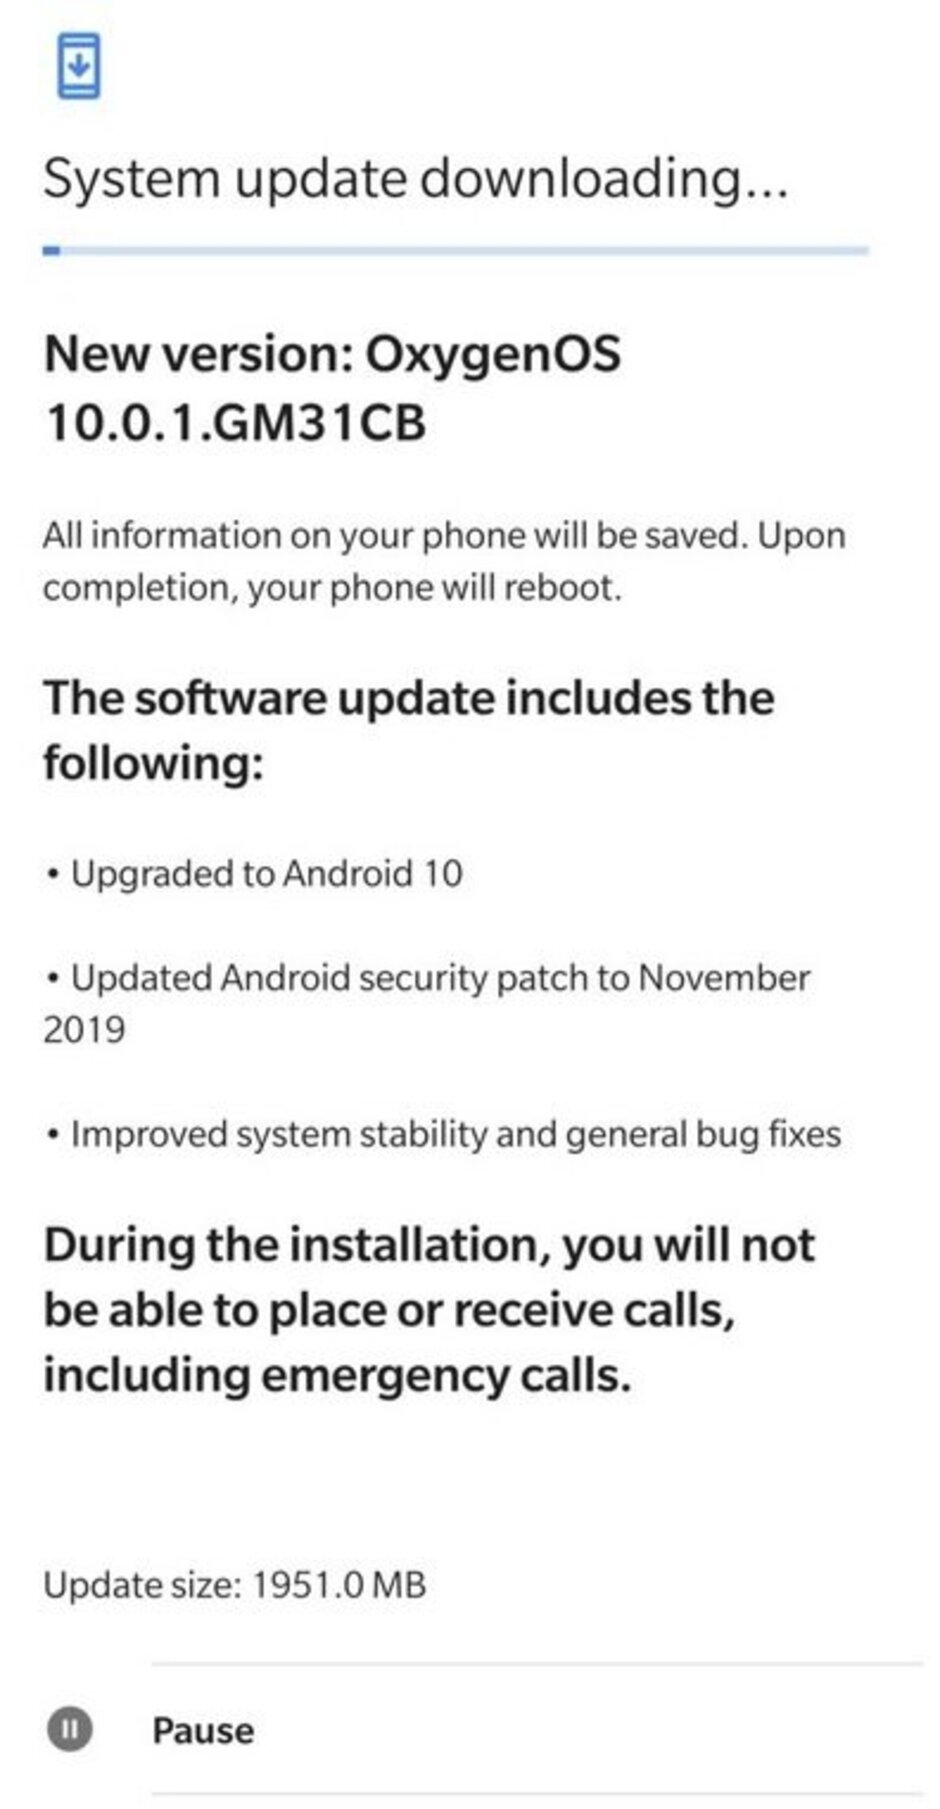 Android 10 is finally available to those with the T-Mobile version of the OnePlus 7 Pro - This is one reason why the unlocked version of an Android phone tops the carrier-locked model